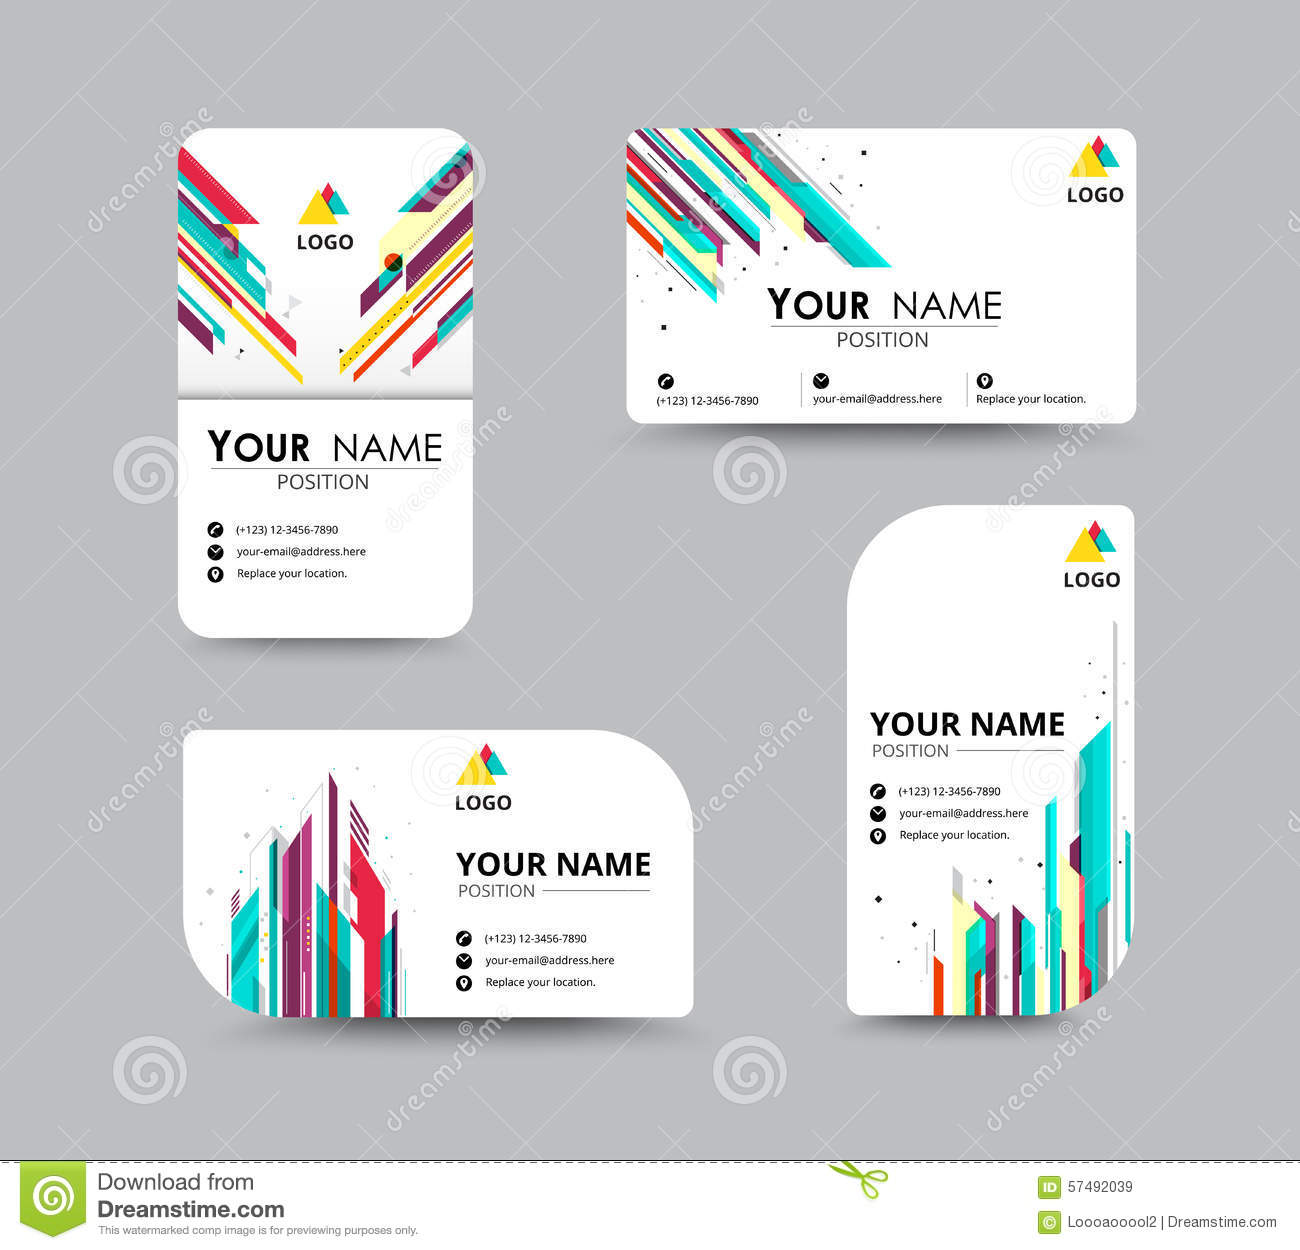 Abstract business card template with sample name position city download comp colourmoves